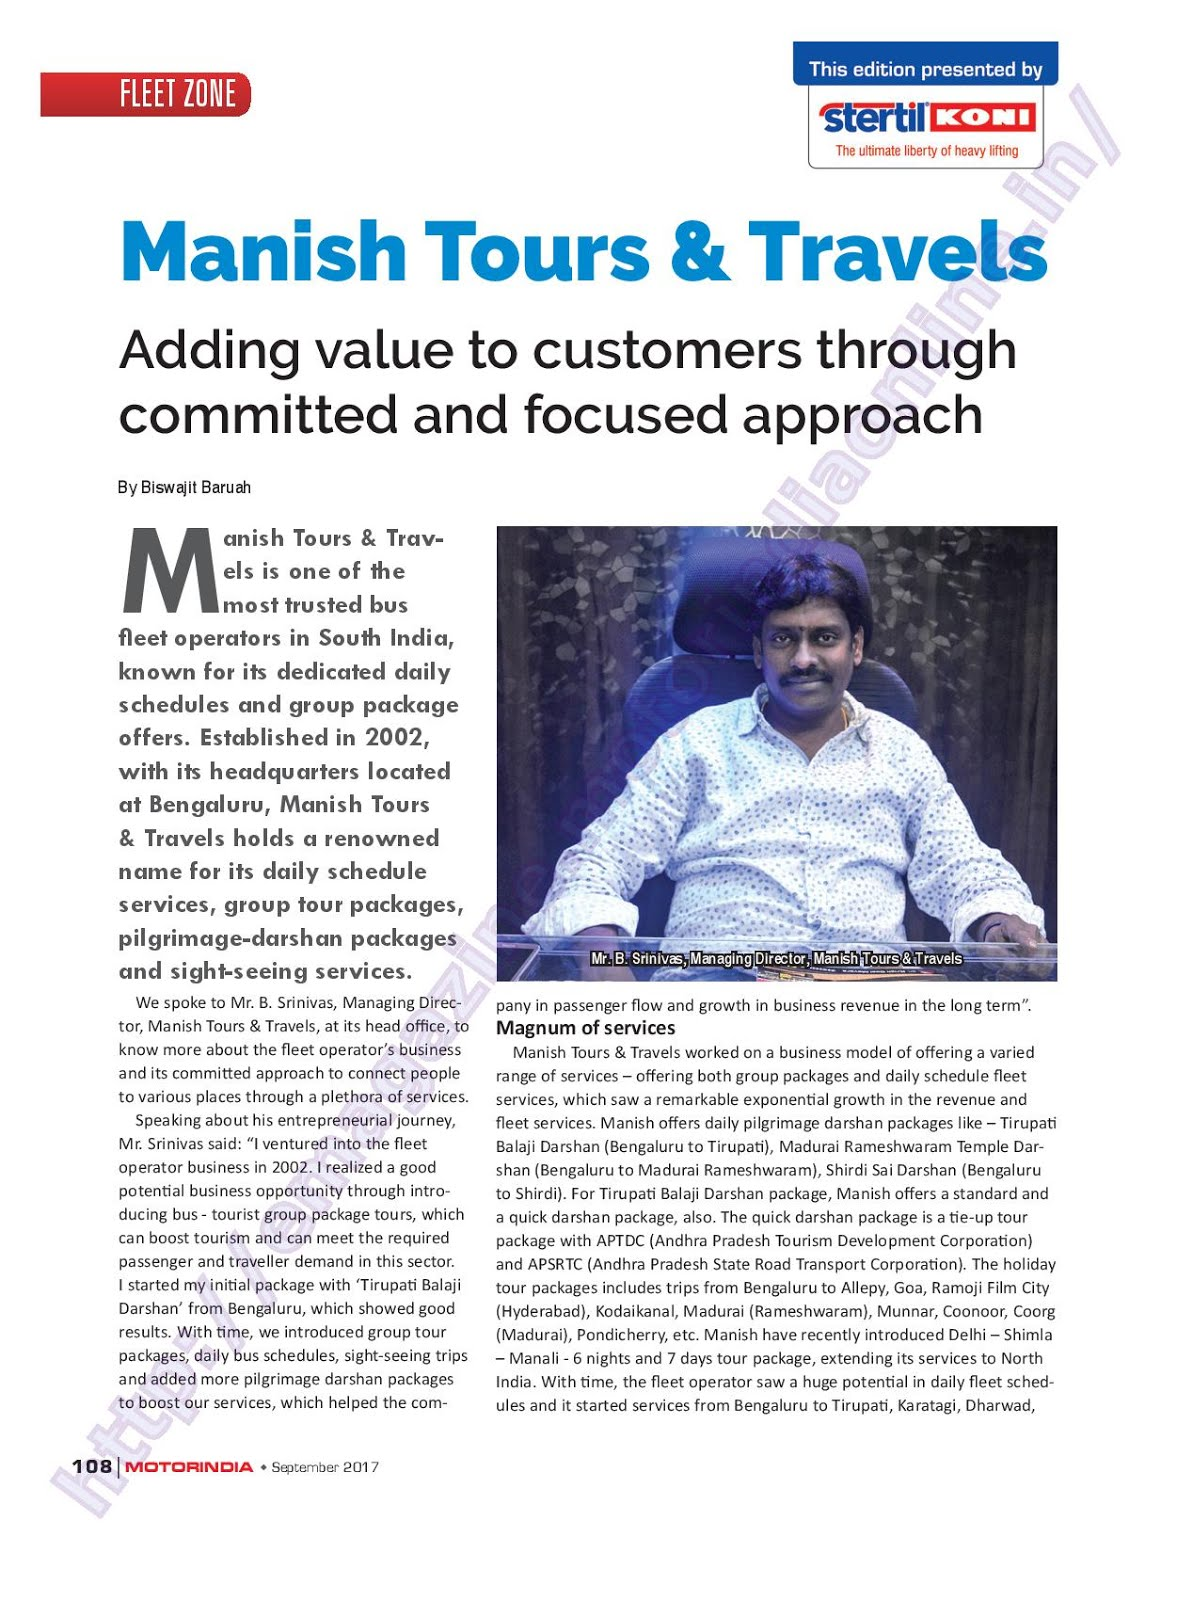 MOTOR INDIA ARTICLE 17 : MANISH TOURS AND TRAVELS